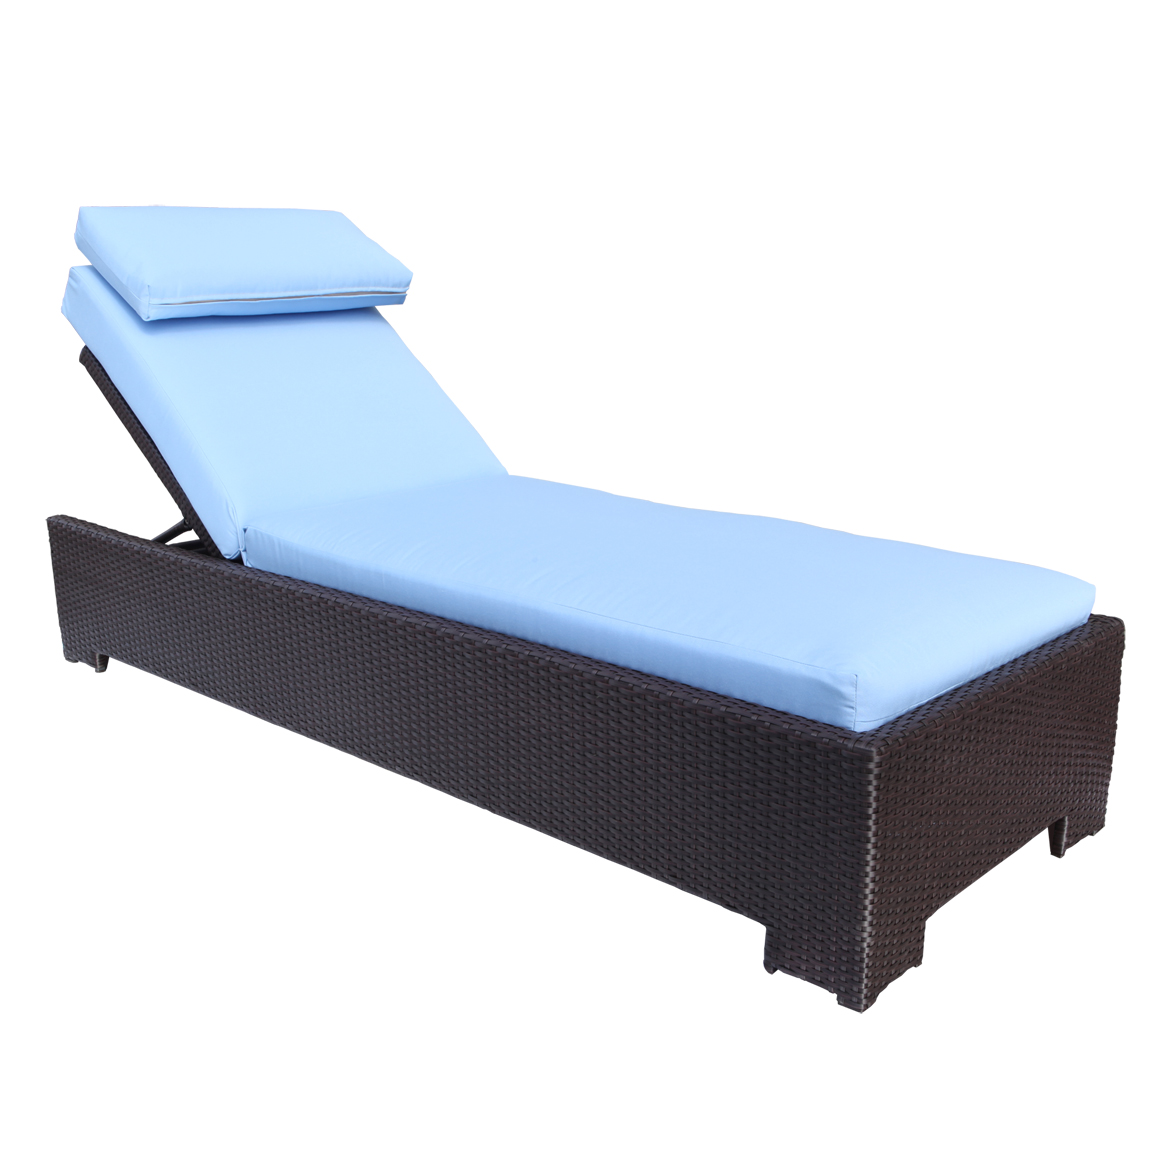 Image of: Blue and Black Patio Chaise Lounge Chairs